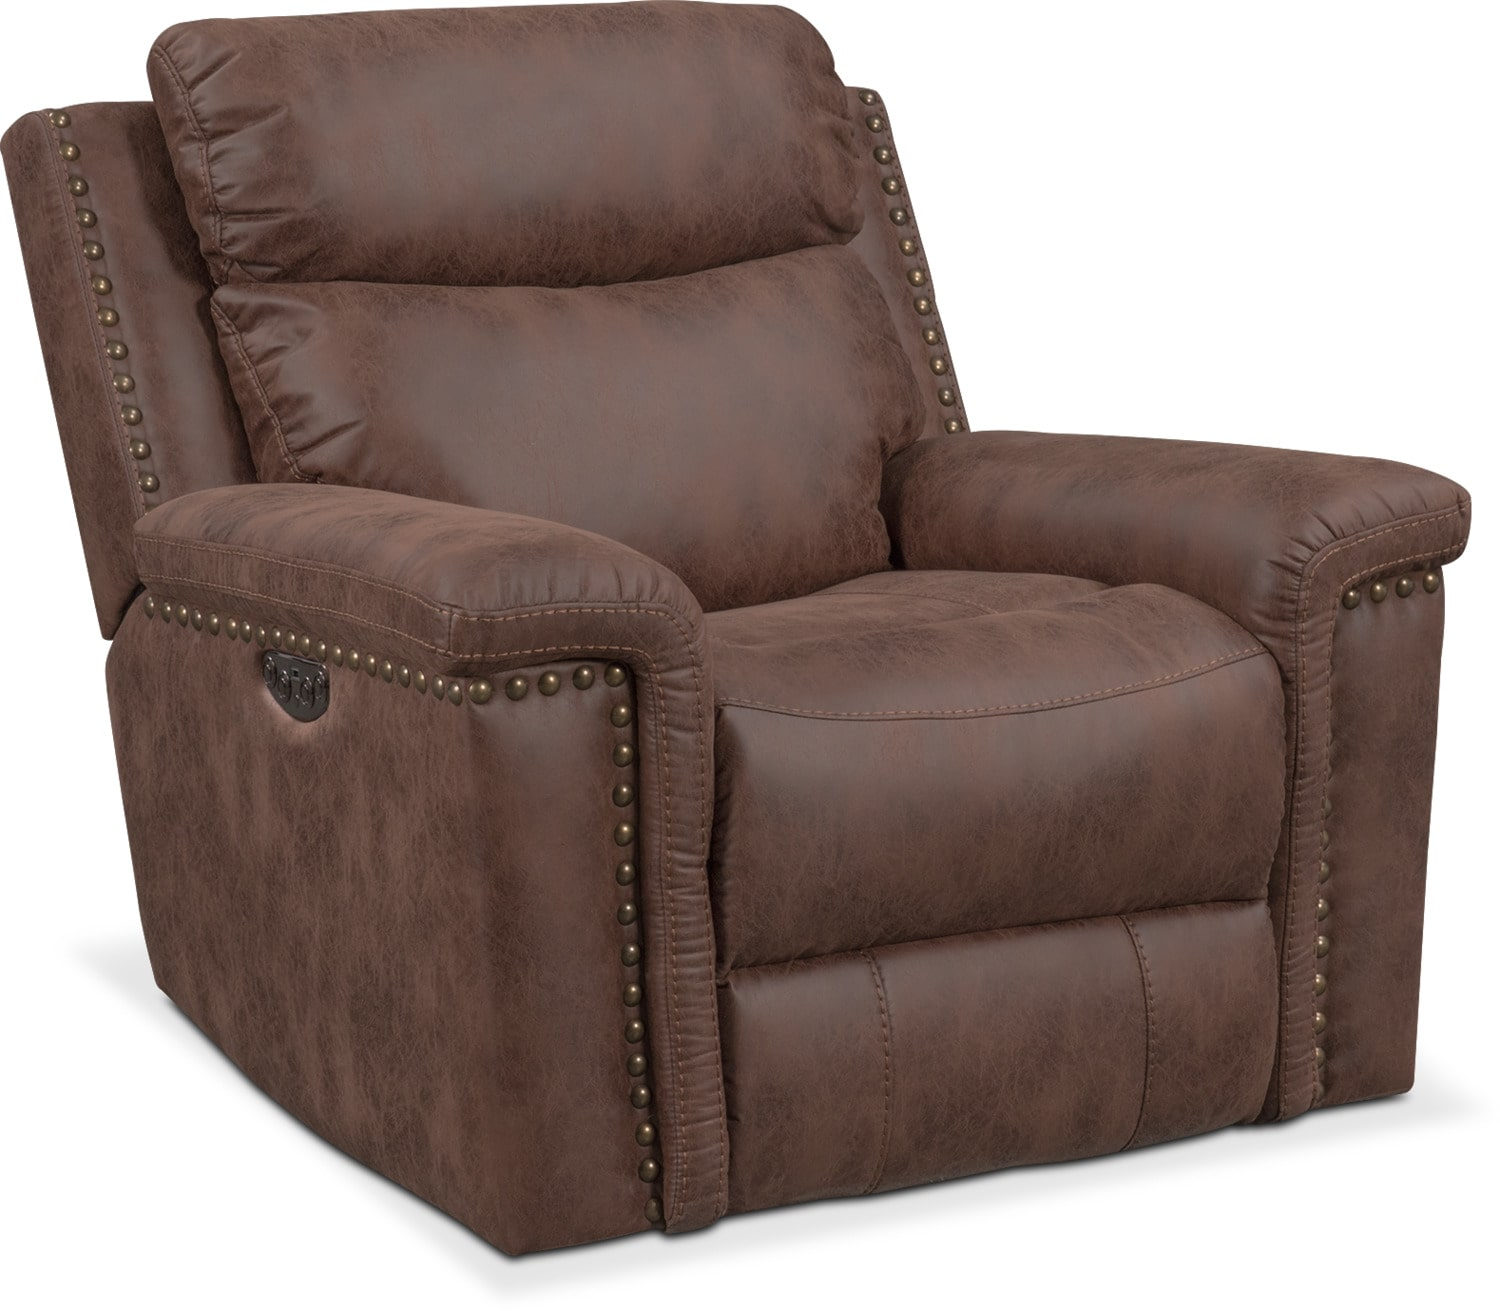 Living Room Furniture - Montana Power Recliner